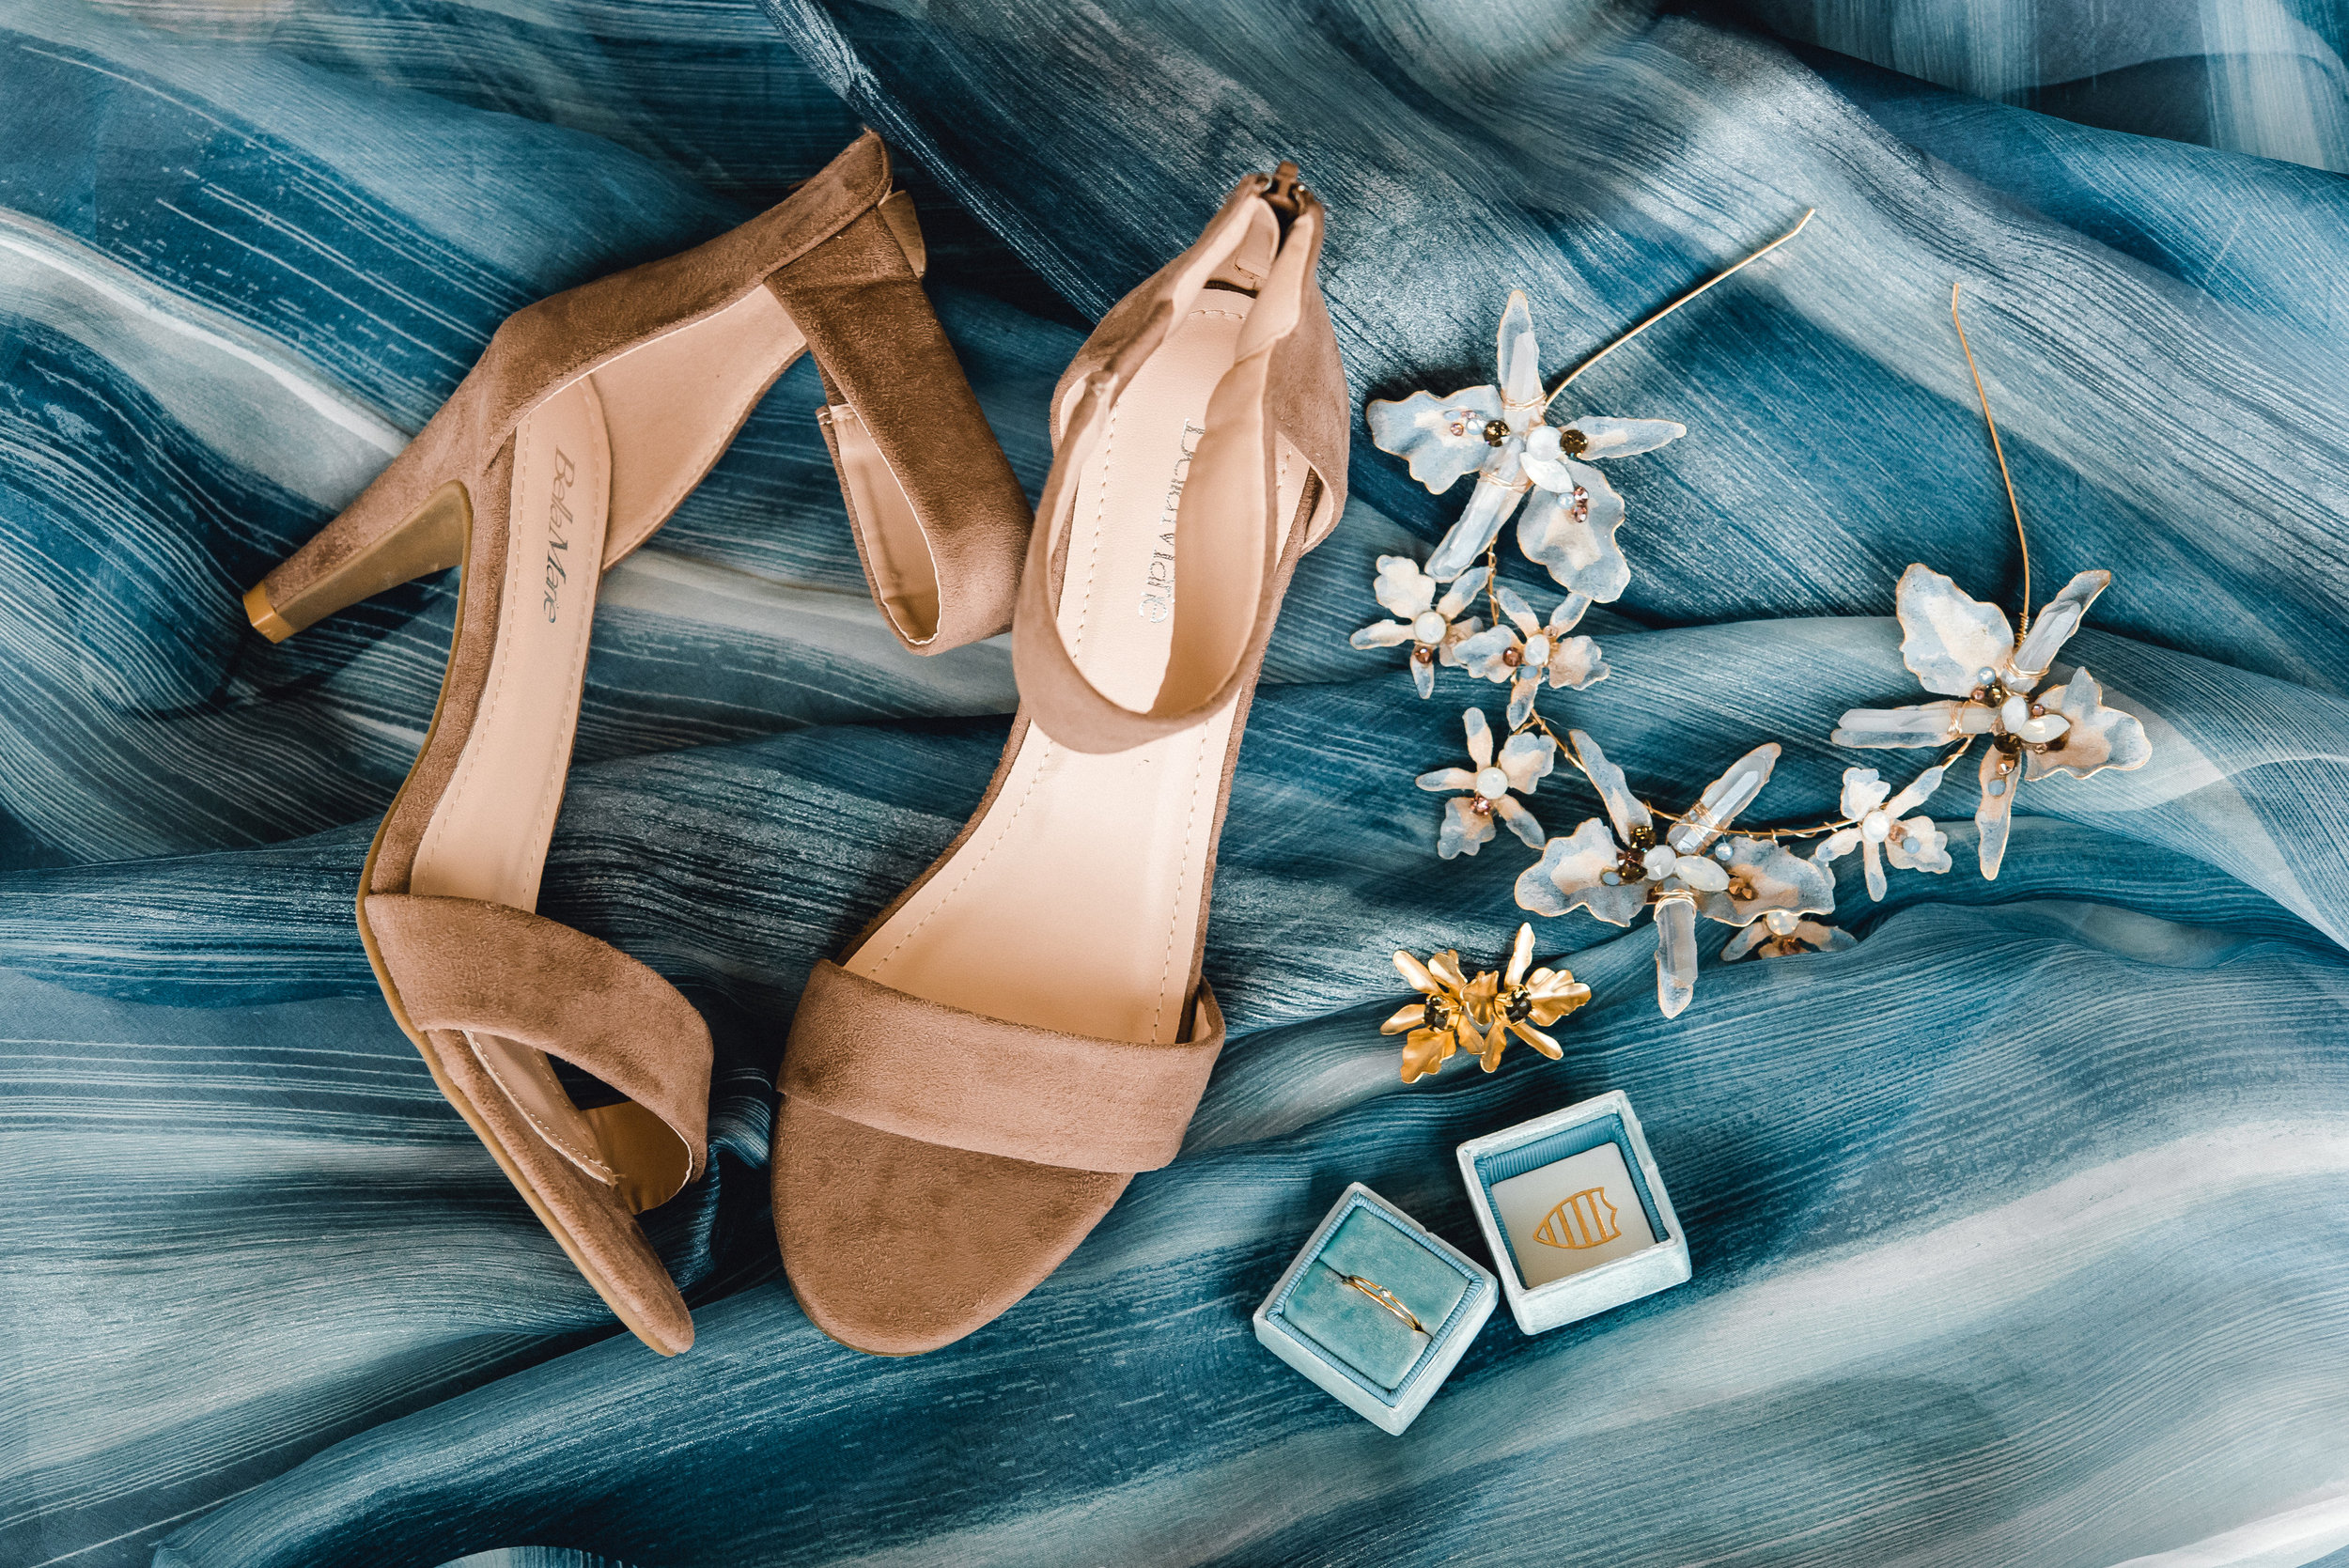 Wedding shoes and bridal accessories for Pablo Neruda enchanting garden styled shoot planned by Exhale Events. Get inspired at exhale-events.com!